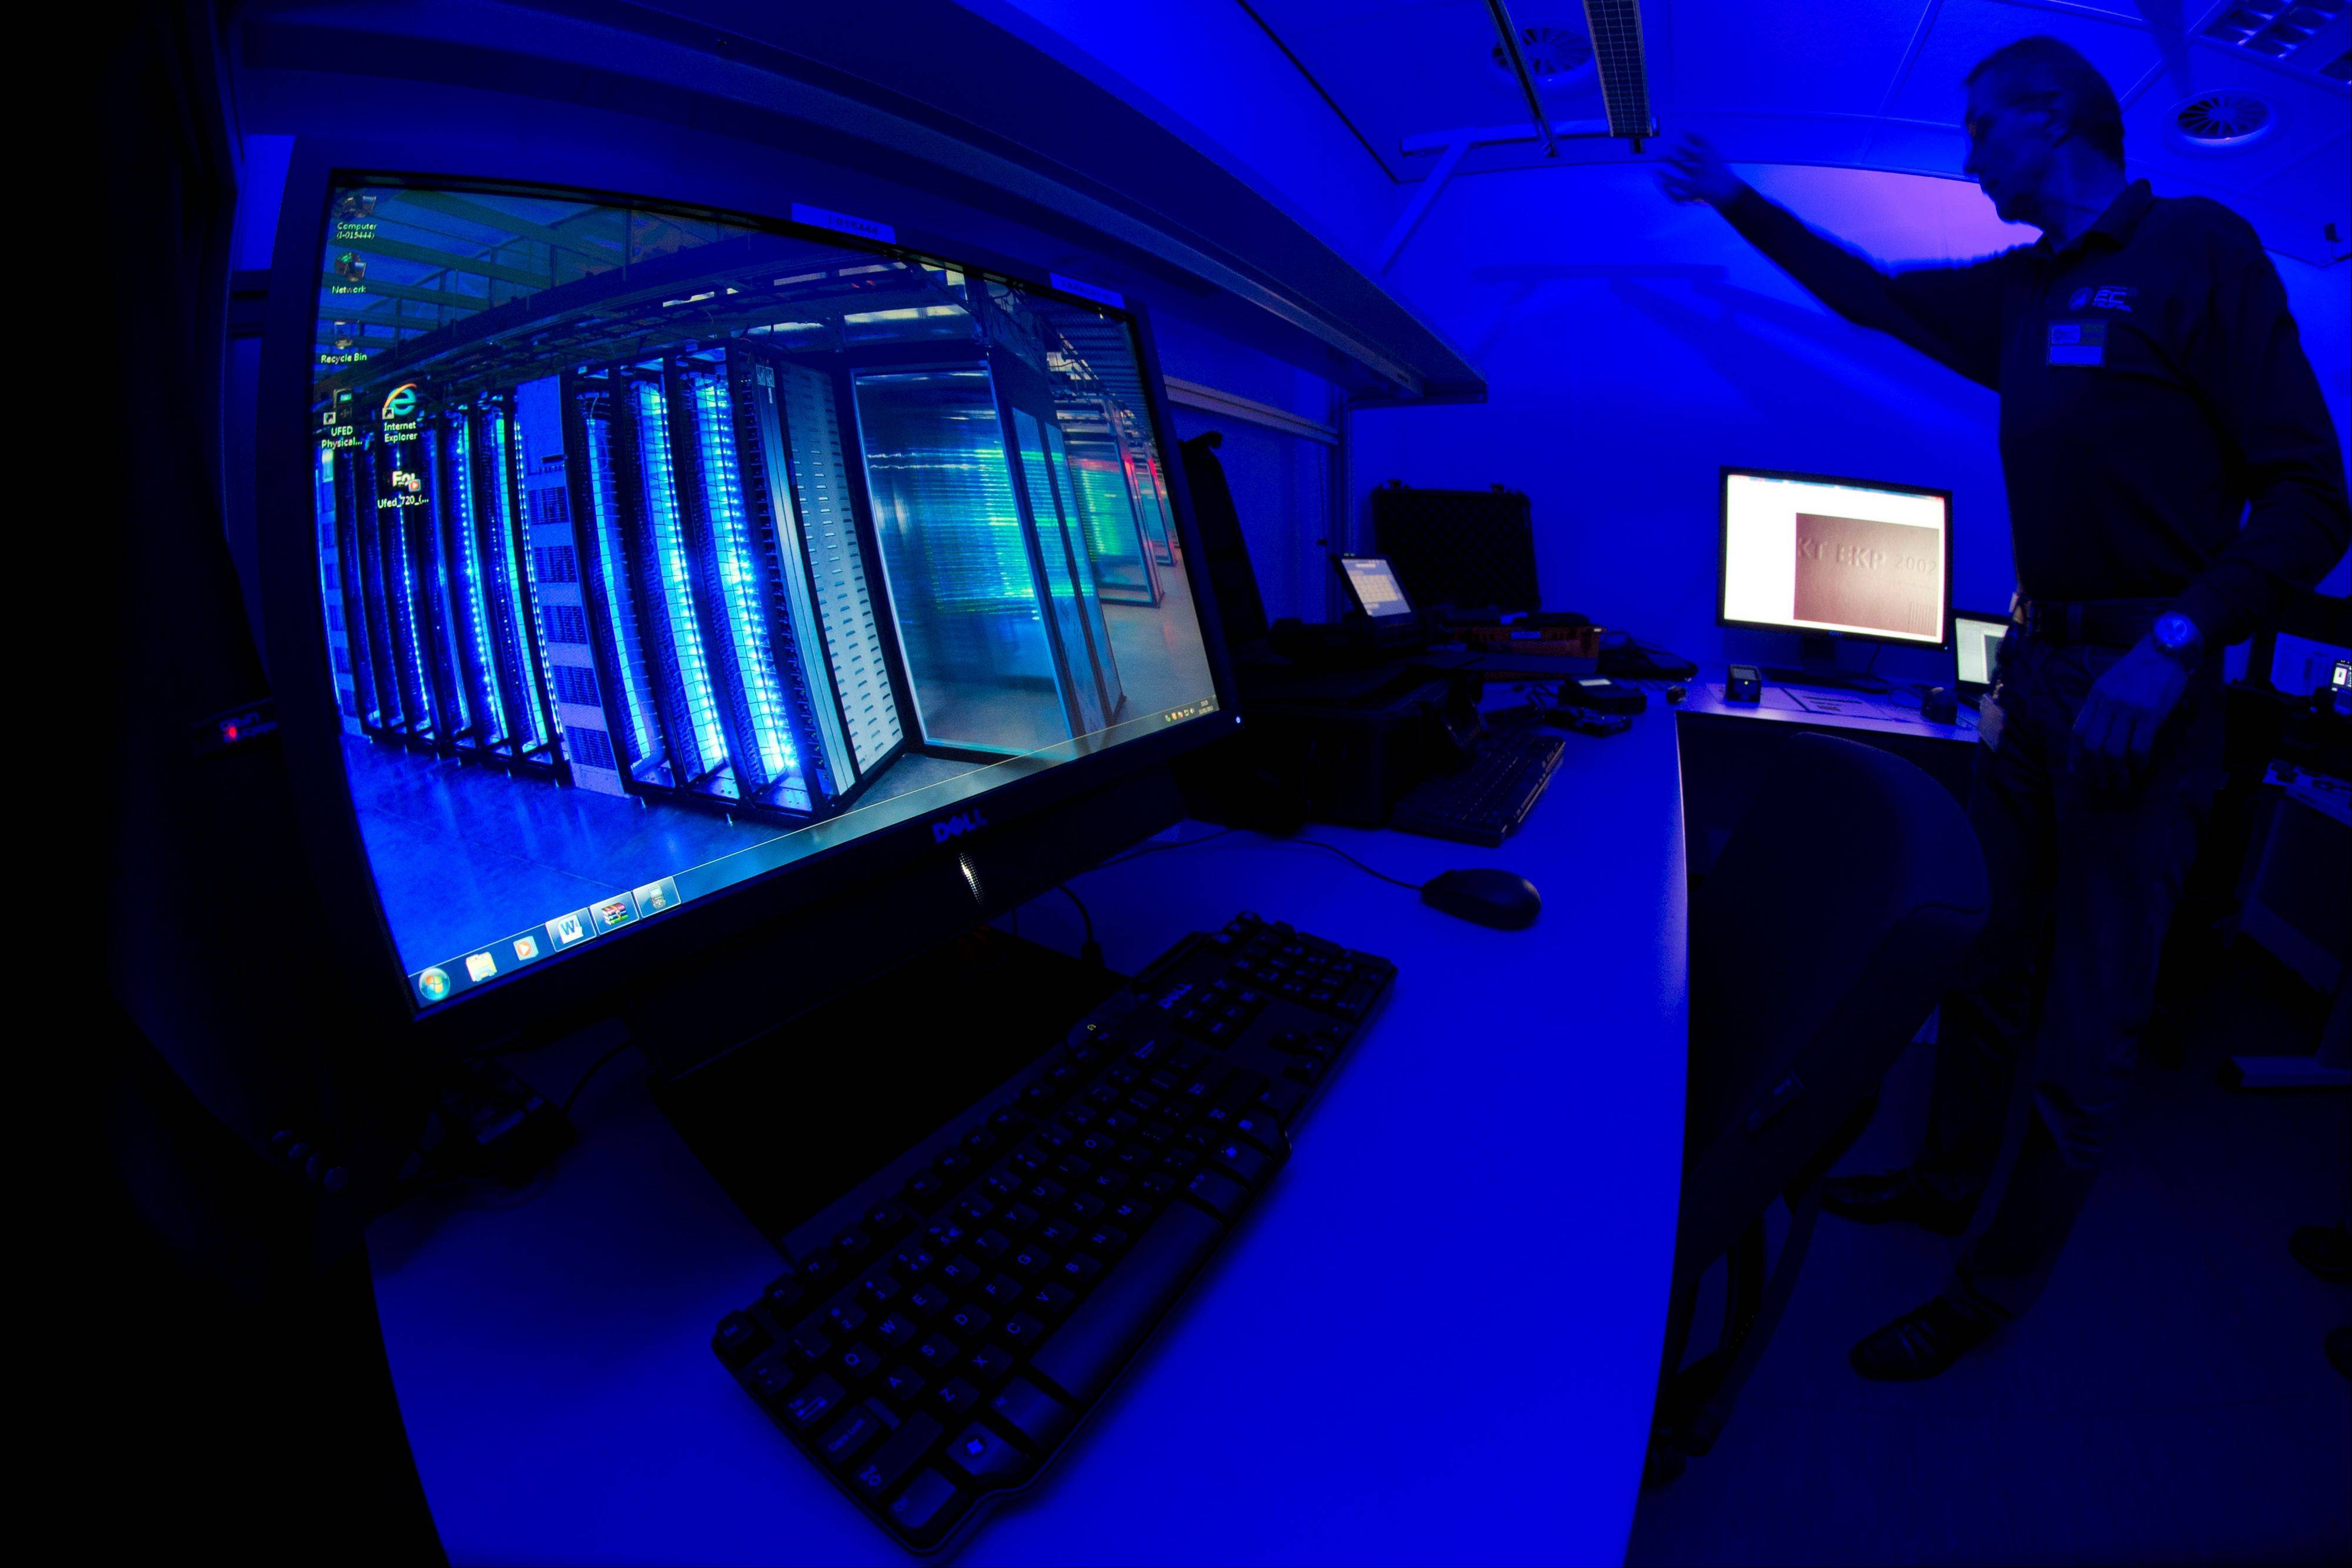 A member of the Cybercrime Center turns on the light in a lab Friday during a media tour at the occasion of the official opening of the Cybercrime Center at Europol headquarters in The Hague, Netherlands. The lab is housed in a cage of Faraday and is used amongst others to analyze computer hard disks, mobile phones and smart phones.